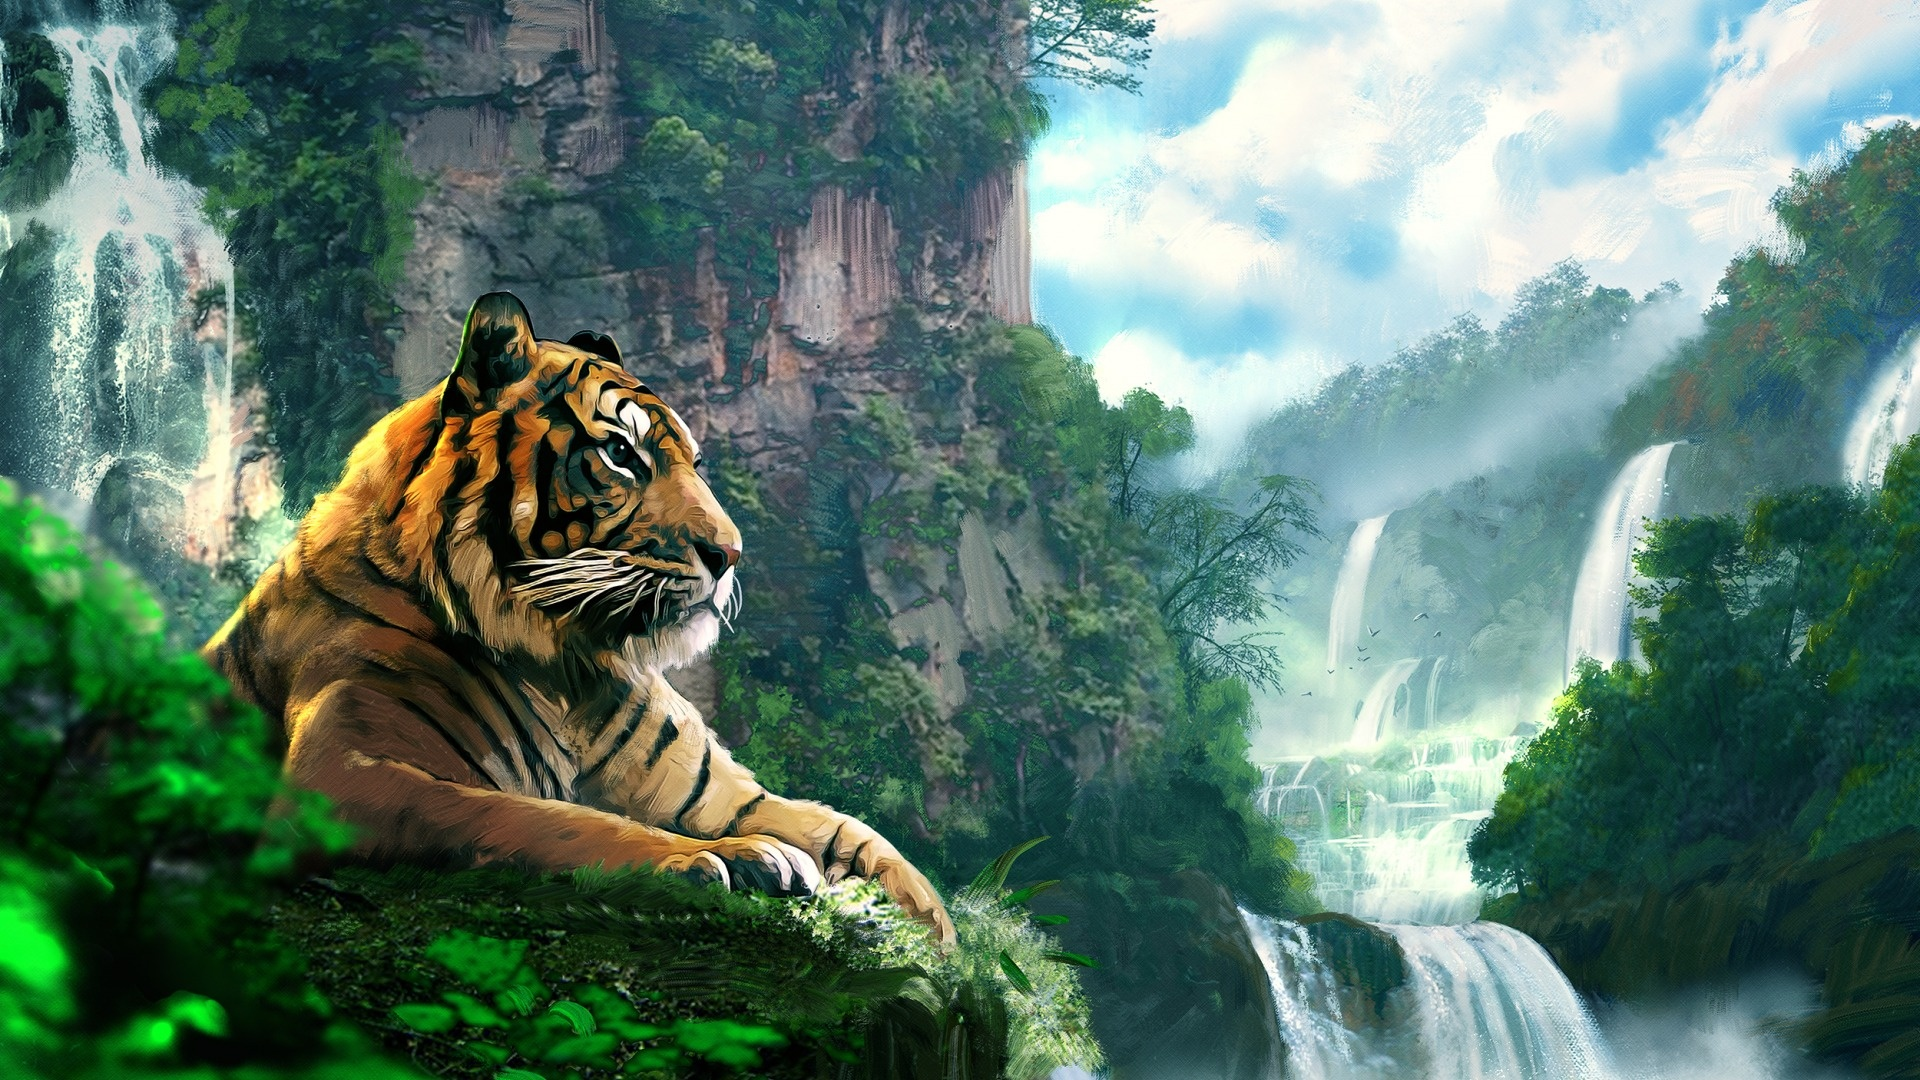 Tiger Forest Waterfall Art Wallpapers 1920x1080 882964